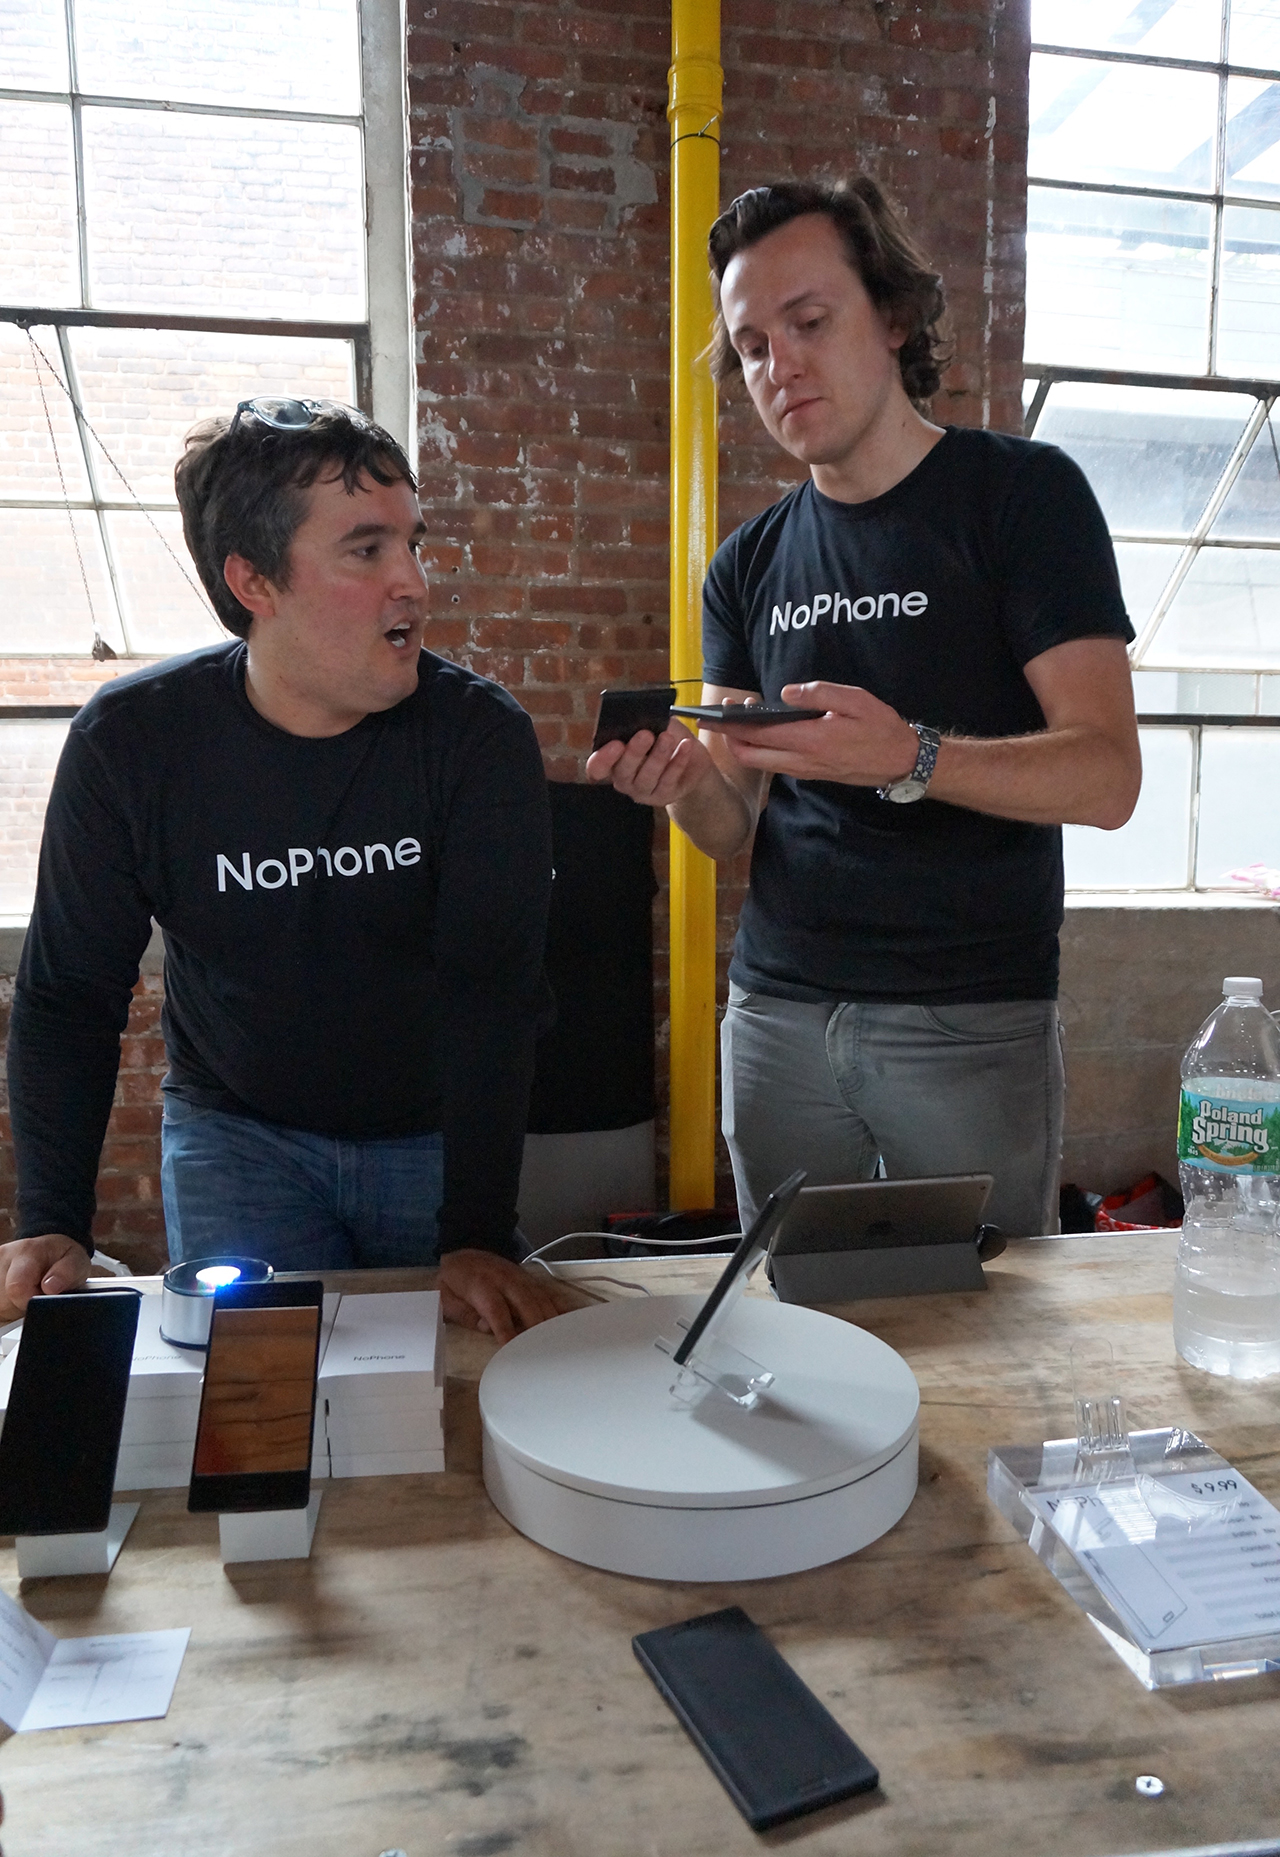 The NoPhone guys